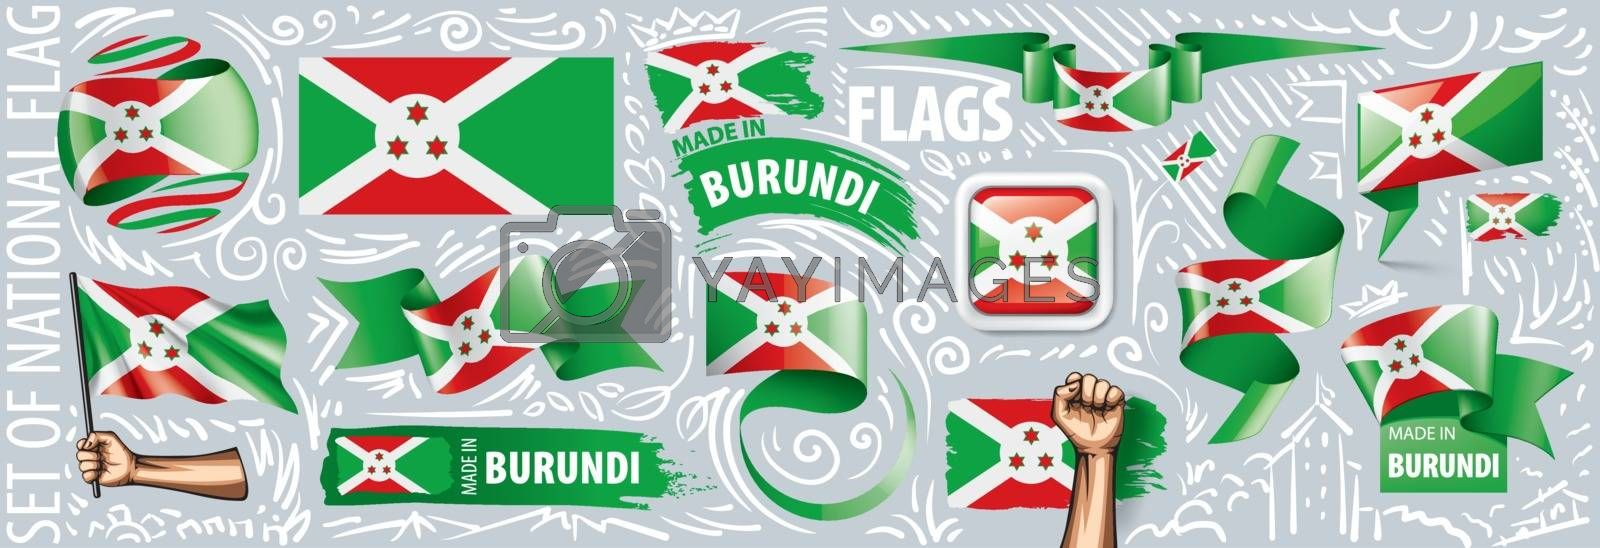 Vector set of the national flag of Burundi in various creative designs.